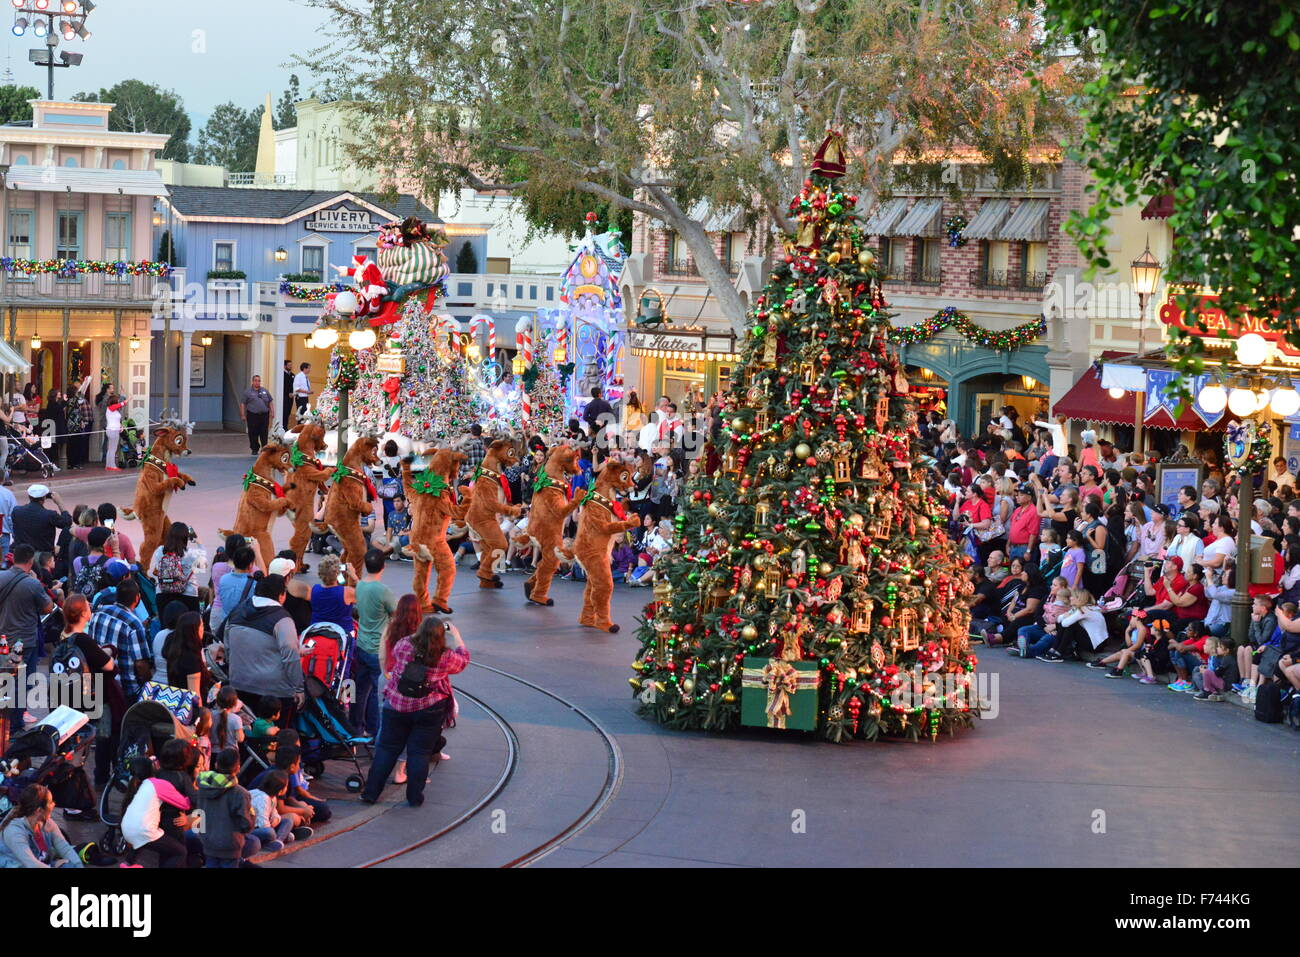 Christmas In Los Angeles.Disneyland Christmas Parade In Los Angeles Stock Photo